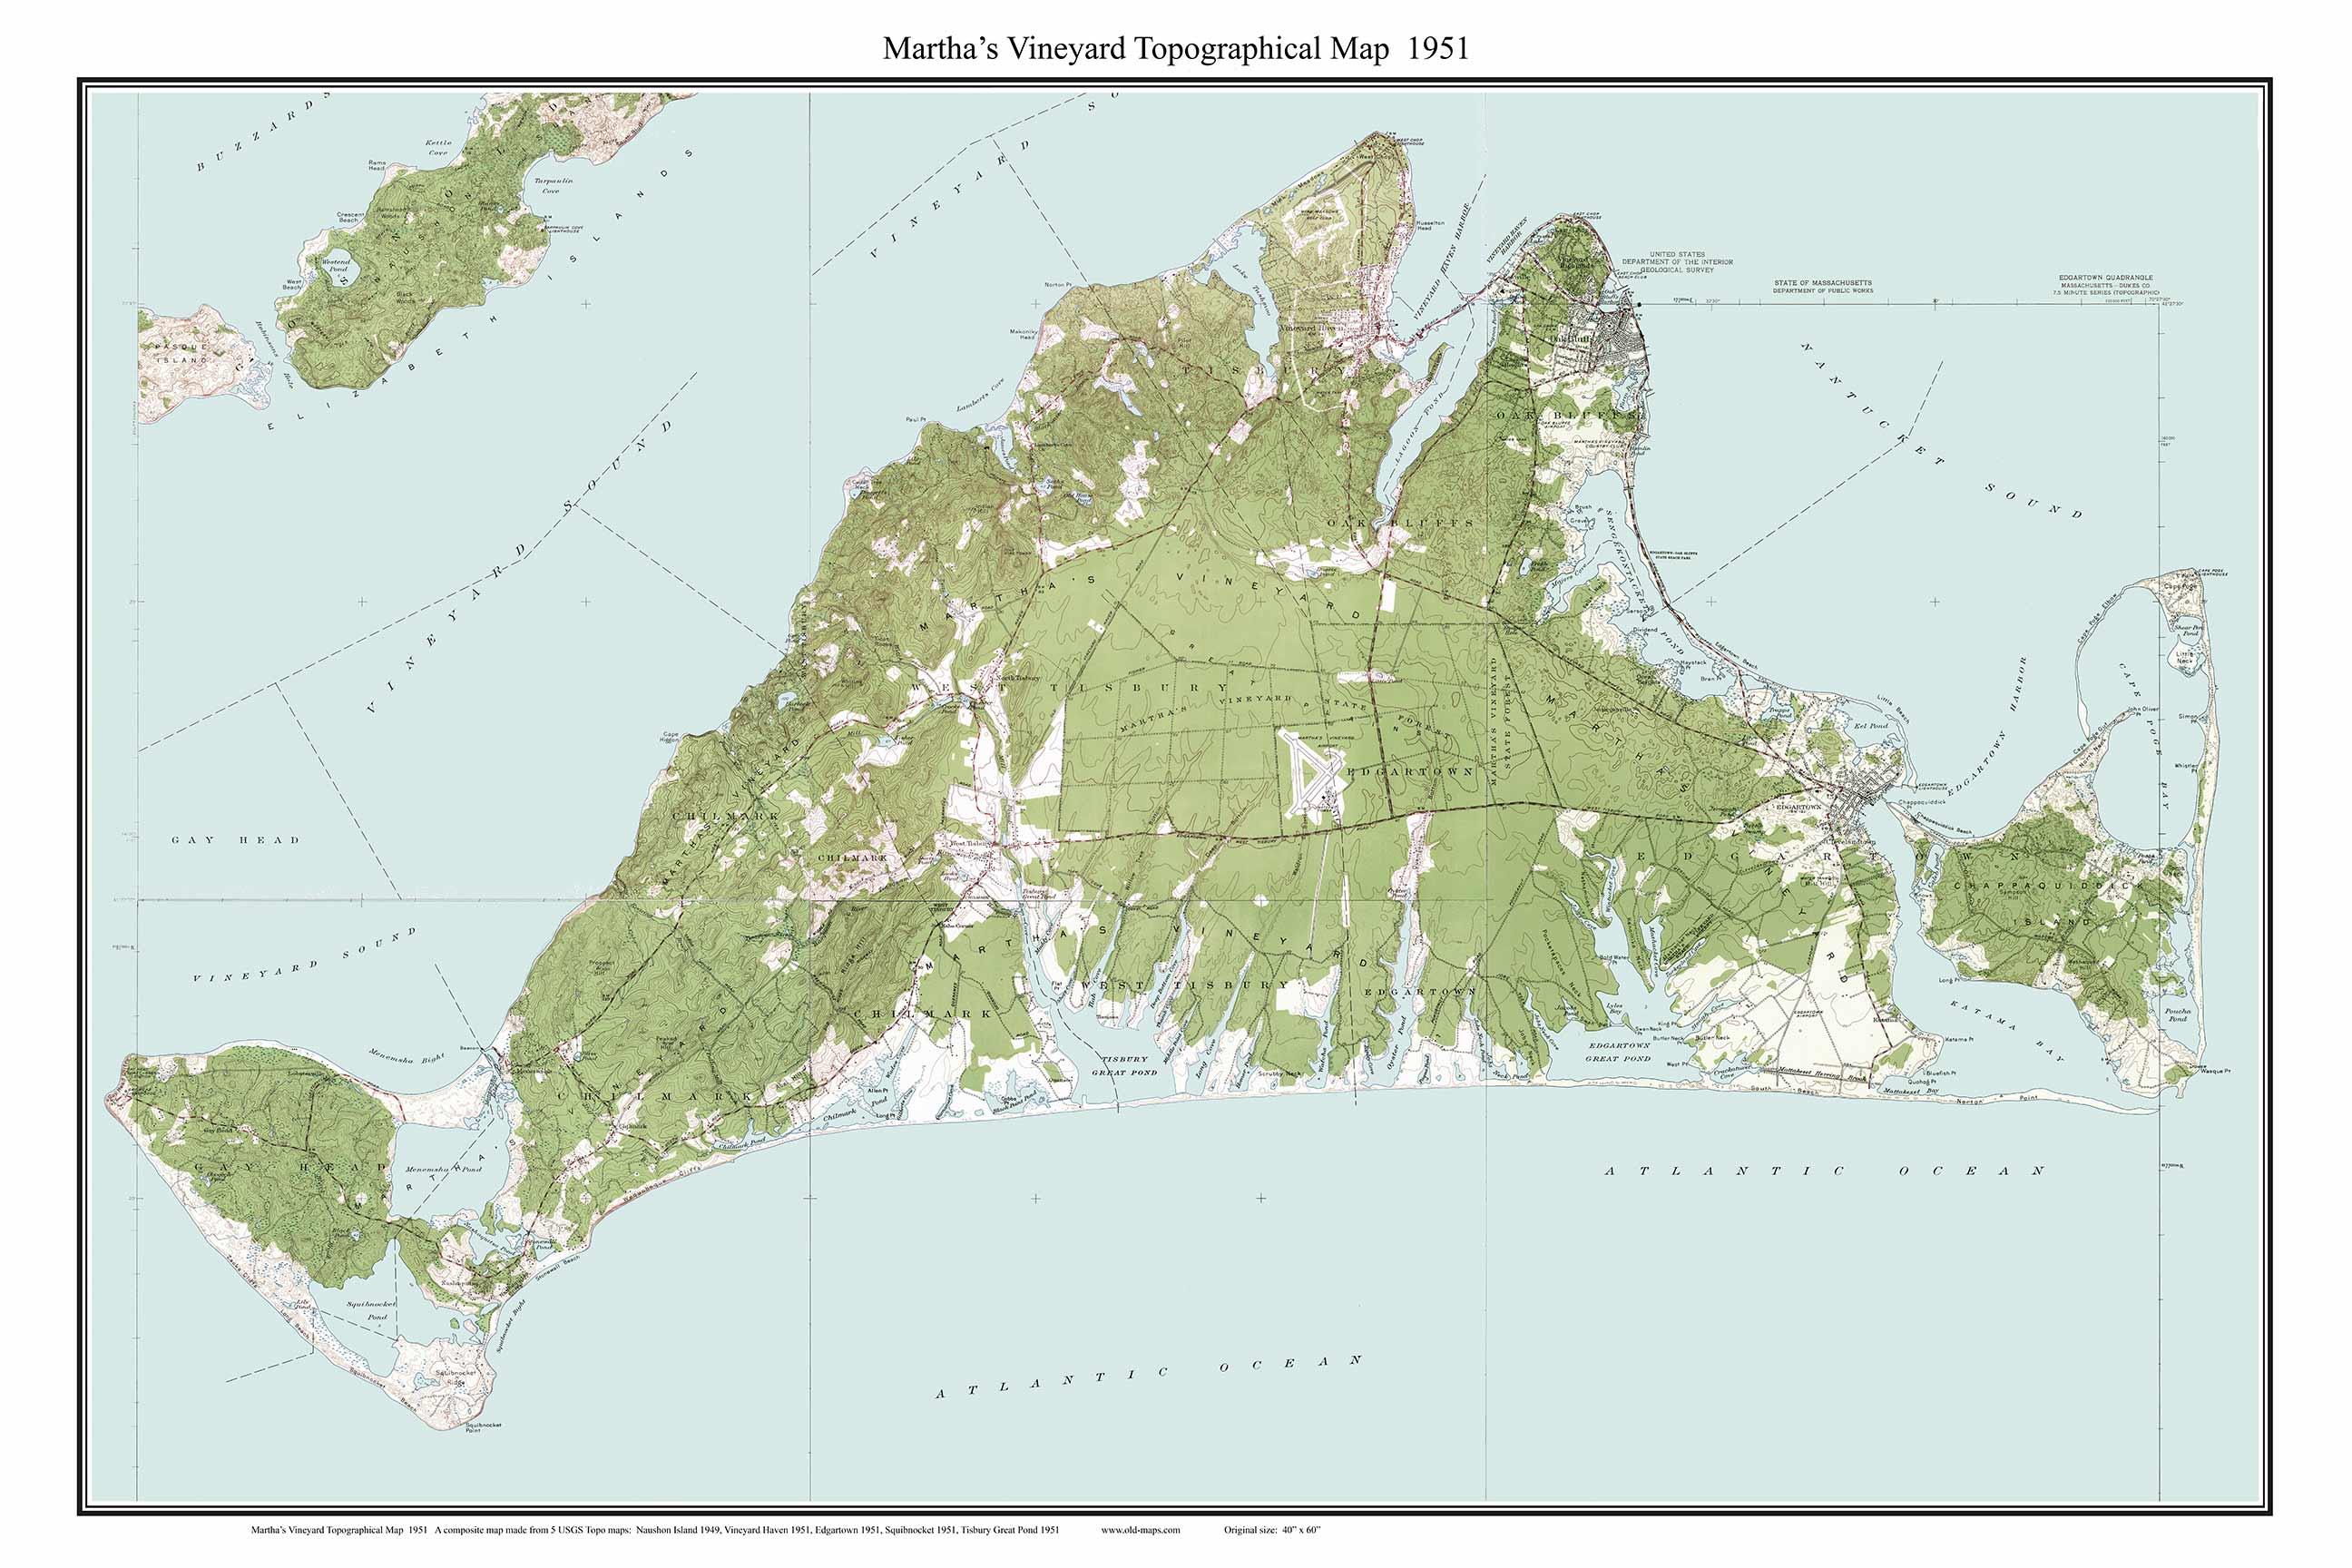 Martha's Vineyard 1951 Topographical Map